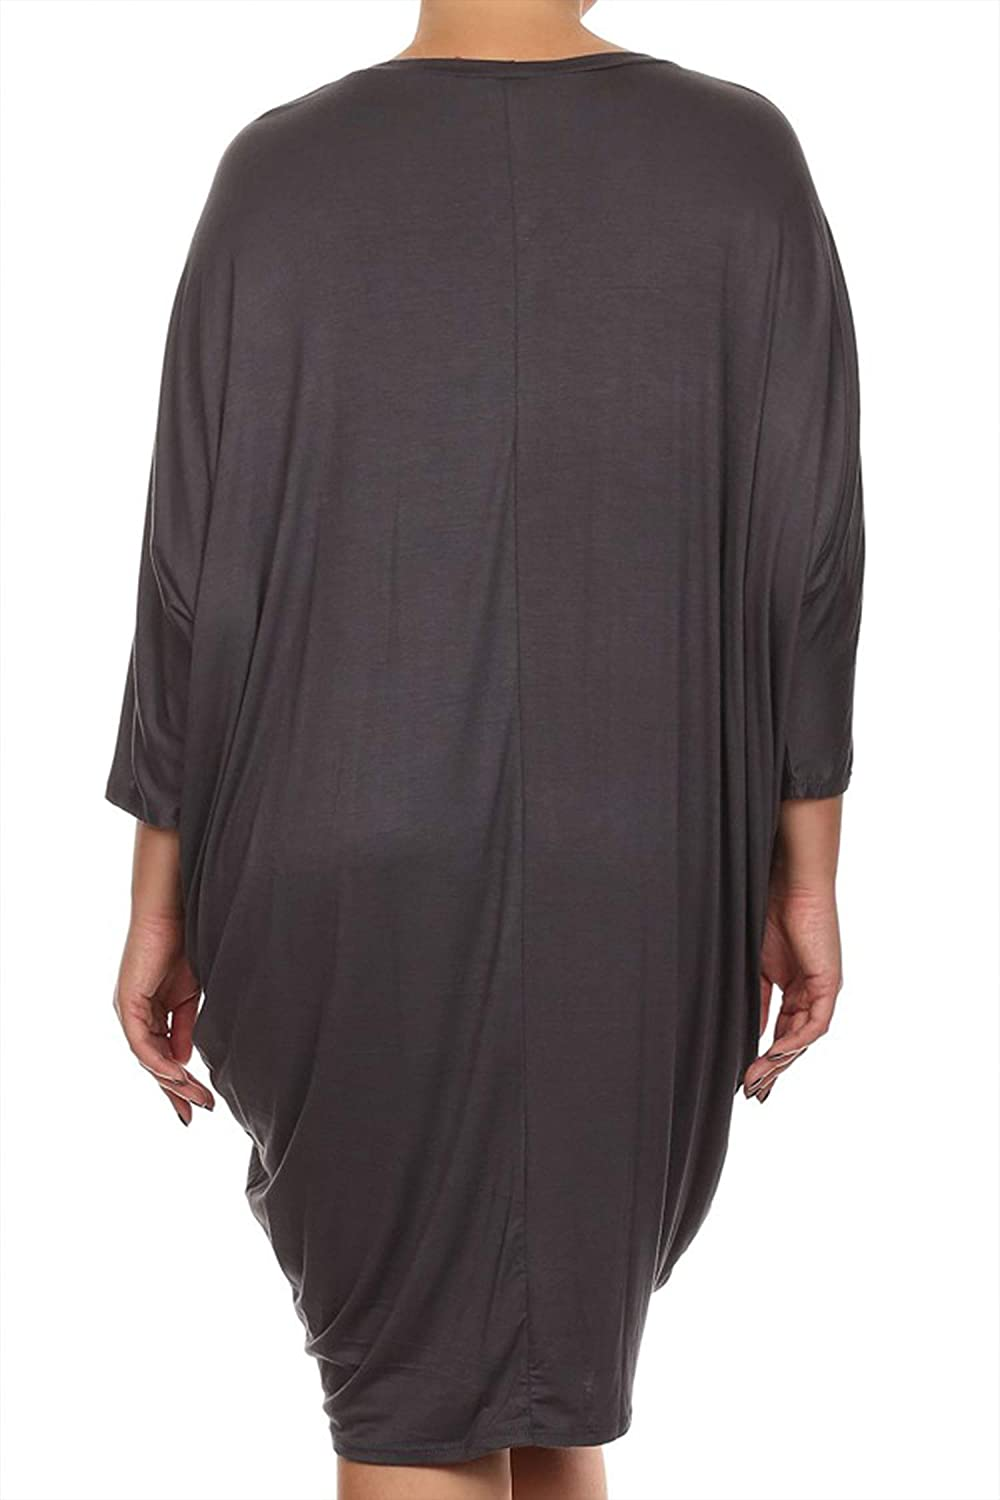 Women's Plus Size Solid Loose Fit 3/4 Dolman Sleeve Casual Midi Dress/Made in USA